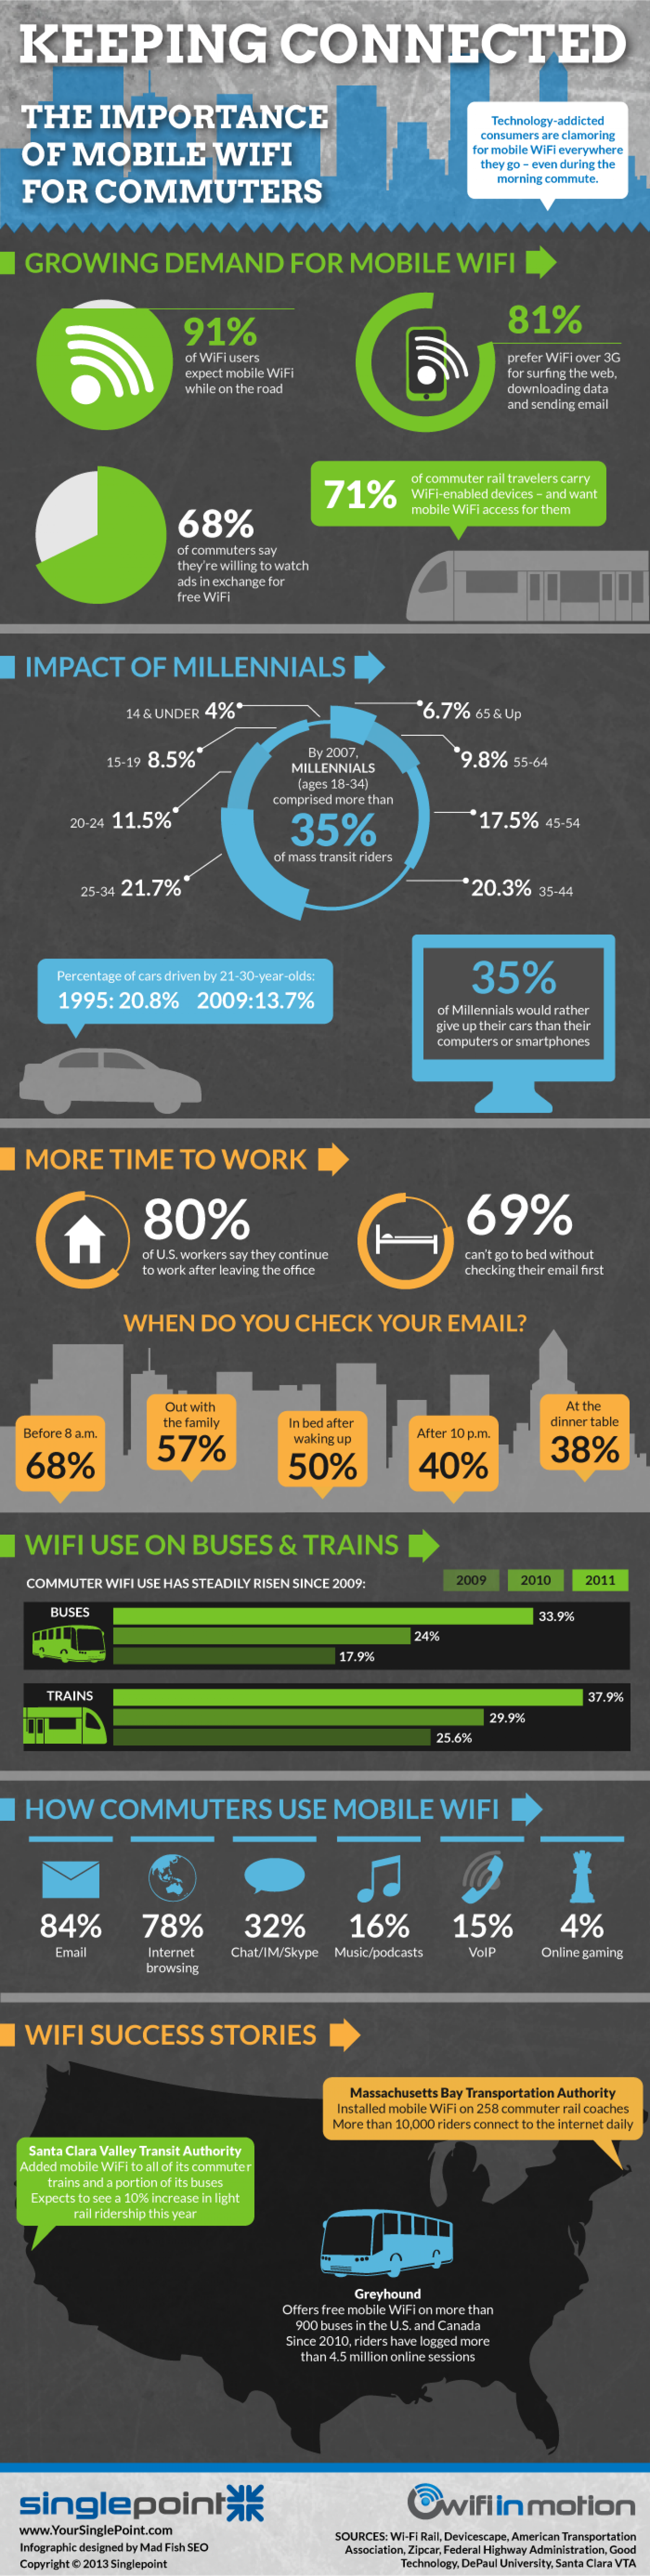 Keeping Connected: The Importance of Mobile WiFi for Commuters  Infographic